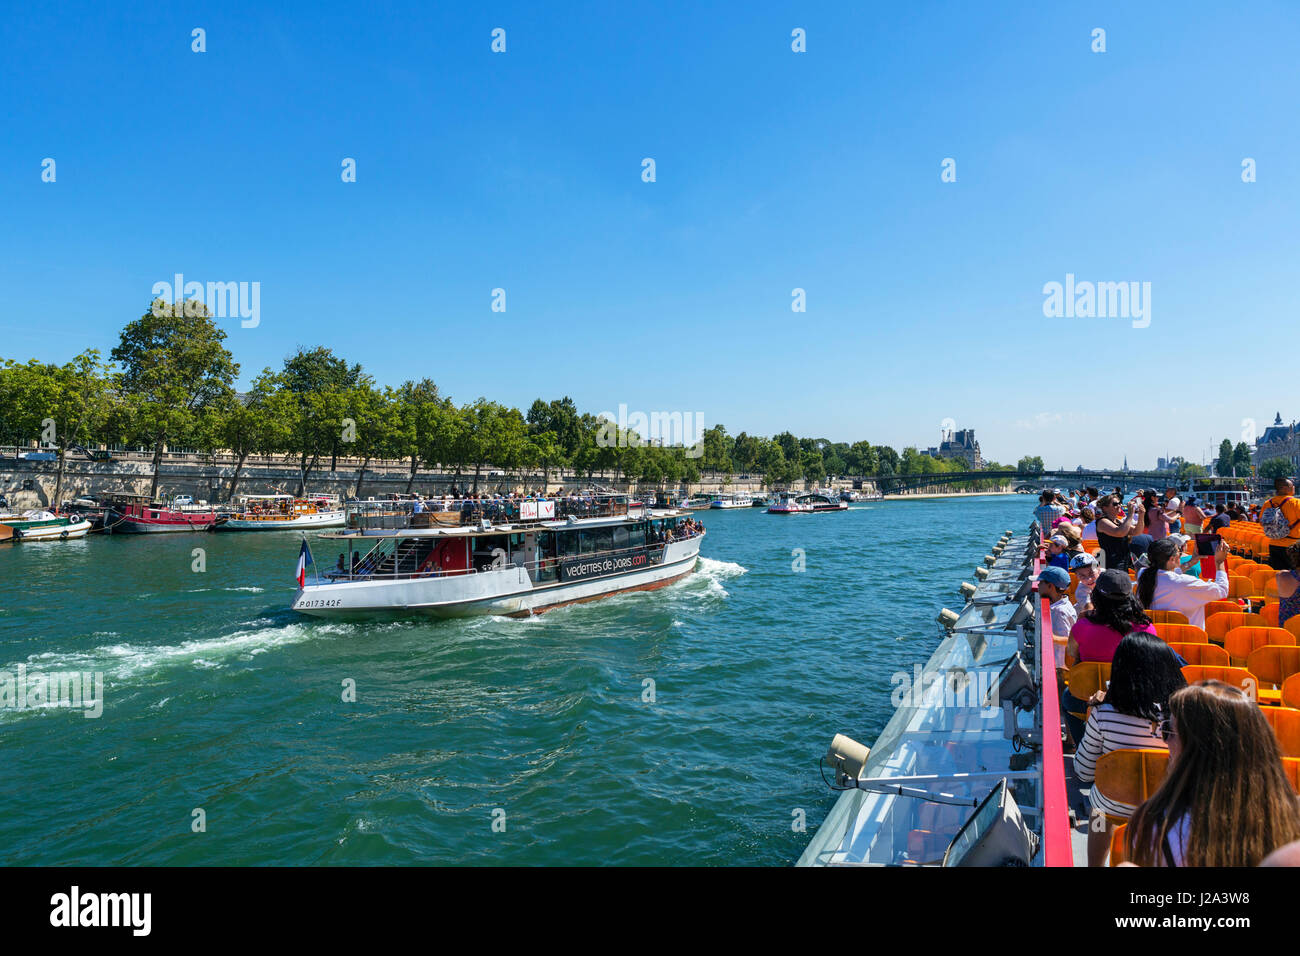 View from a Bateau Mouche on the River Seine, Paris, France - Stock Image